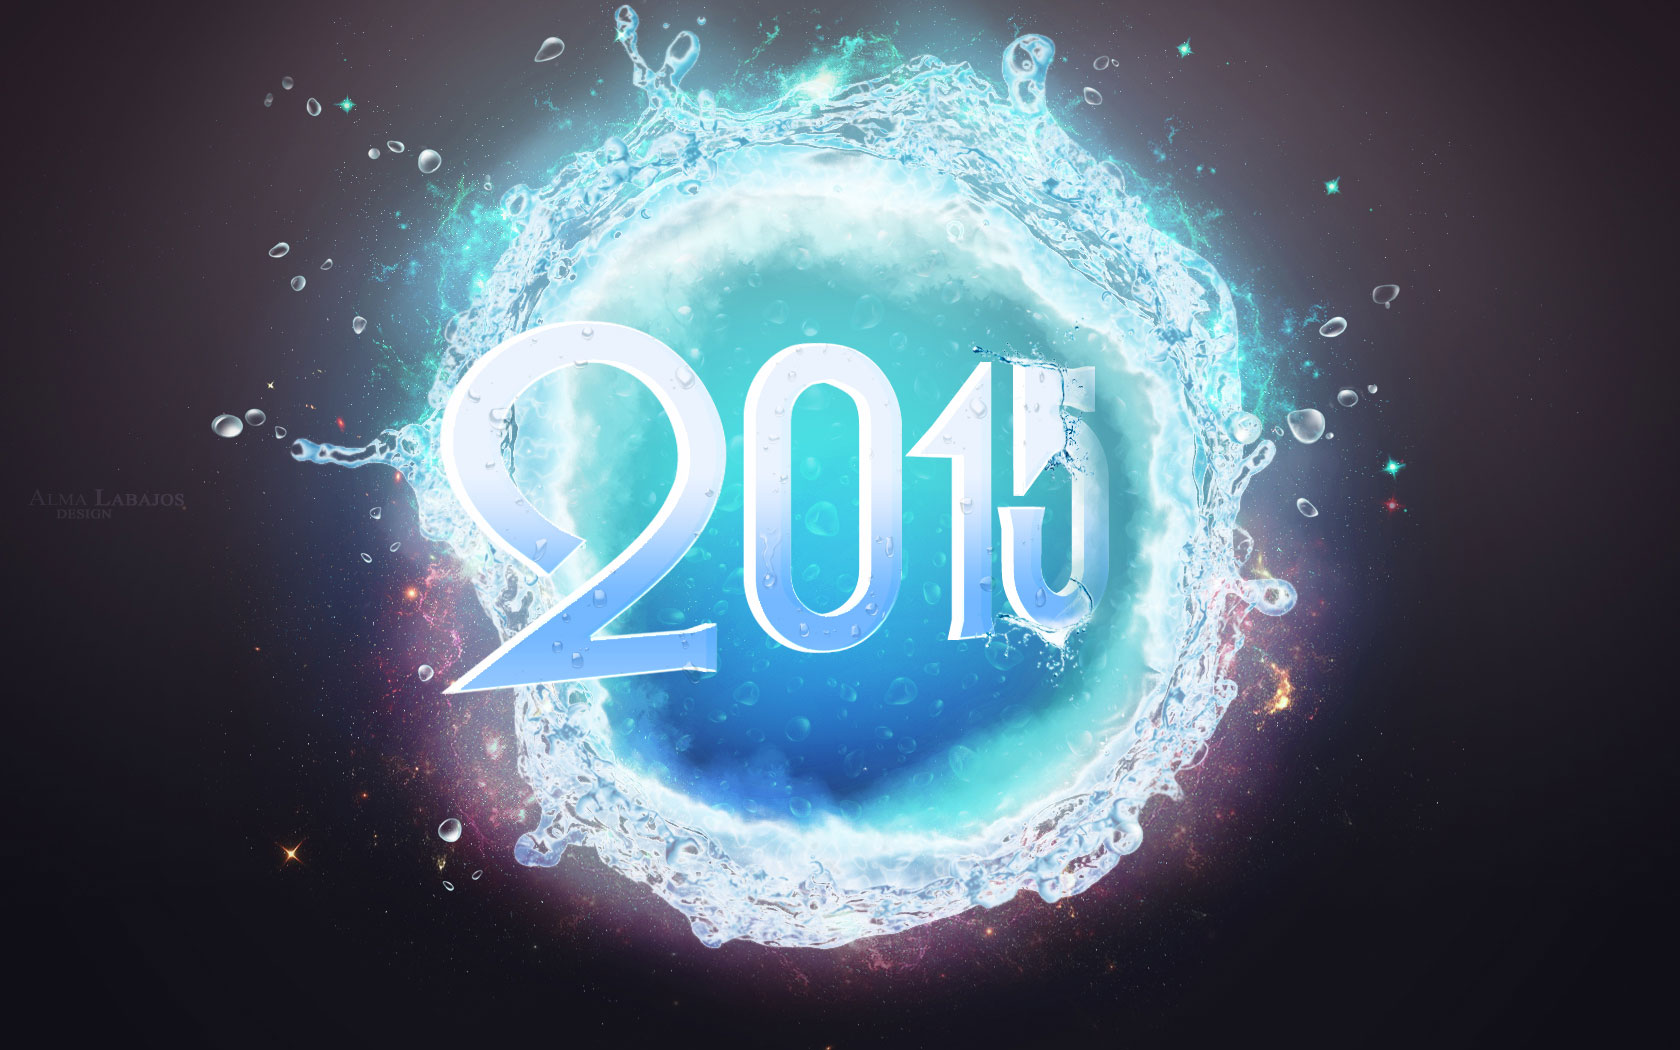 Happy New Year 2015 Wallpapers Images Facebook Cover photos 1680x1050